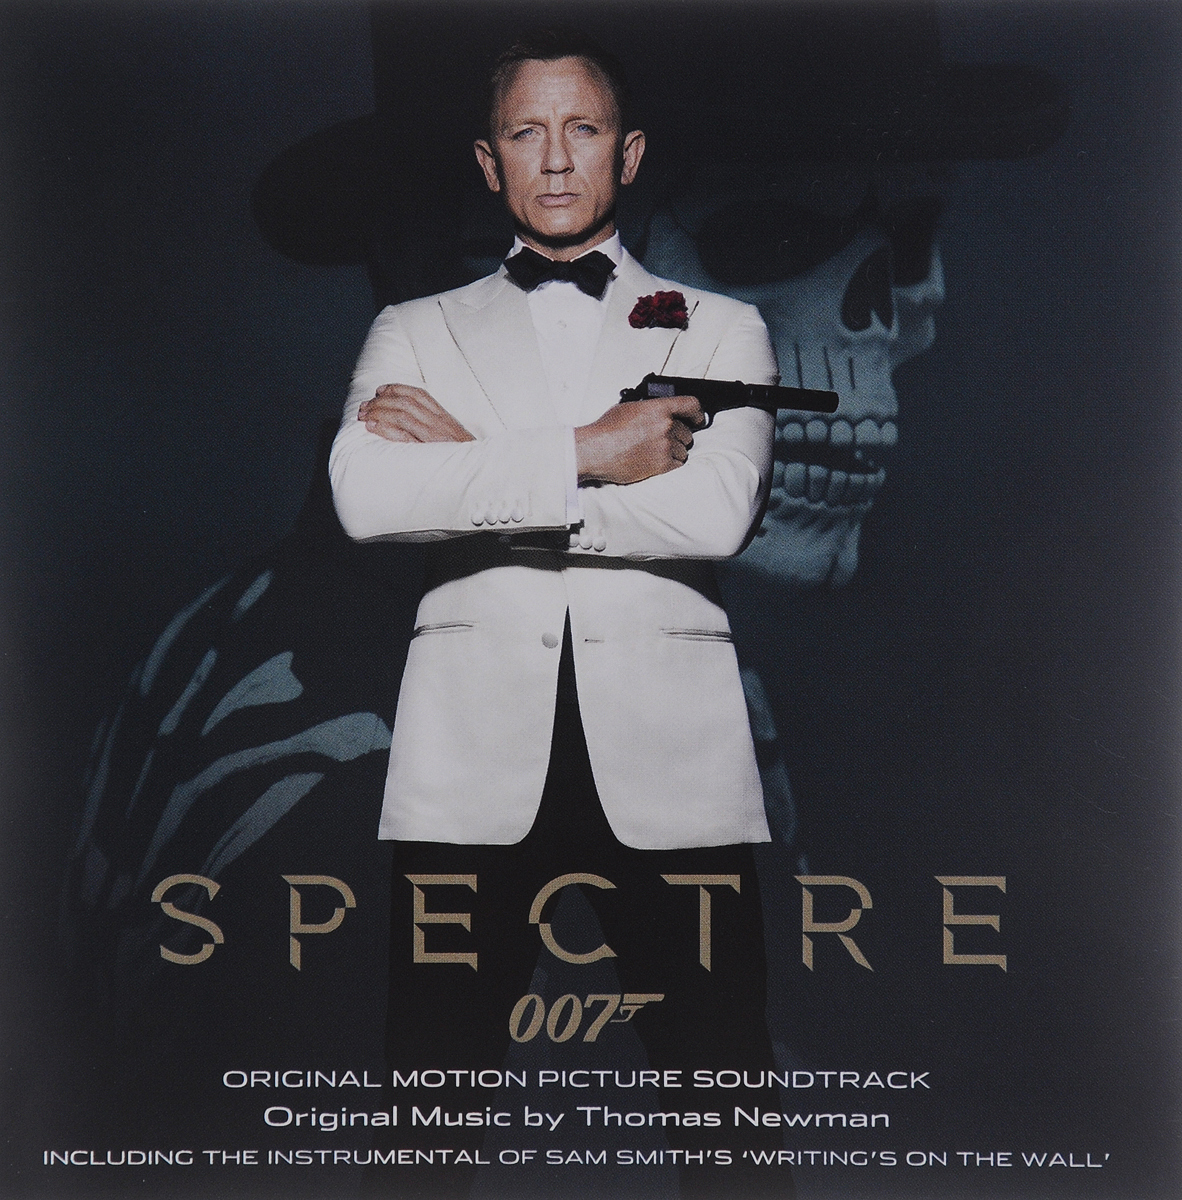 Spectre. Original Motion Picture Soundtrack. Music By Thomas Newman